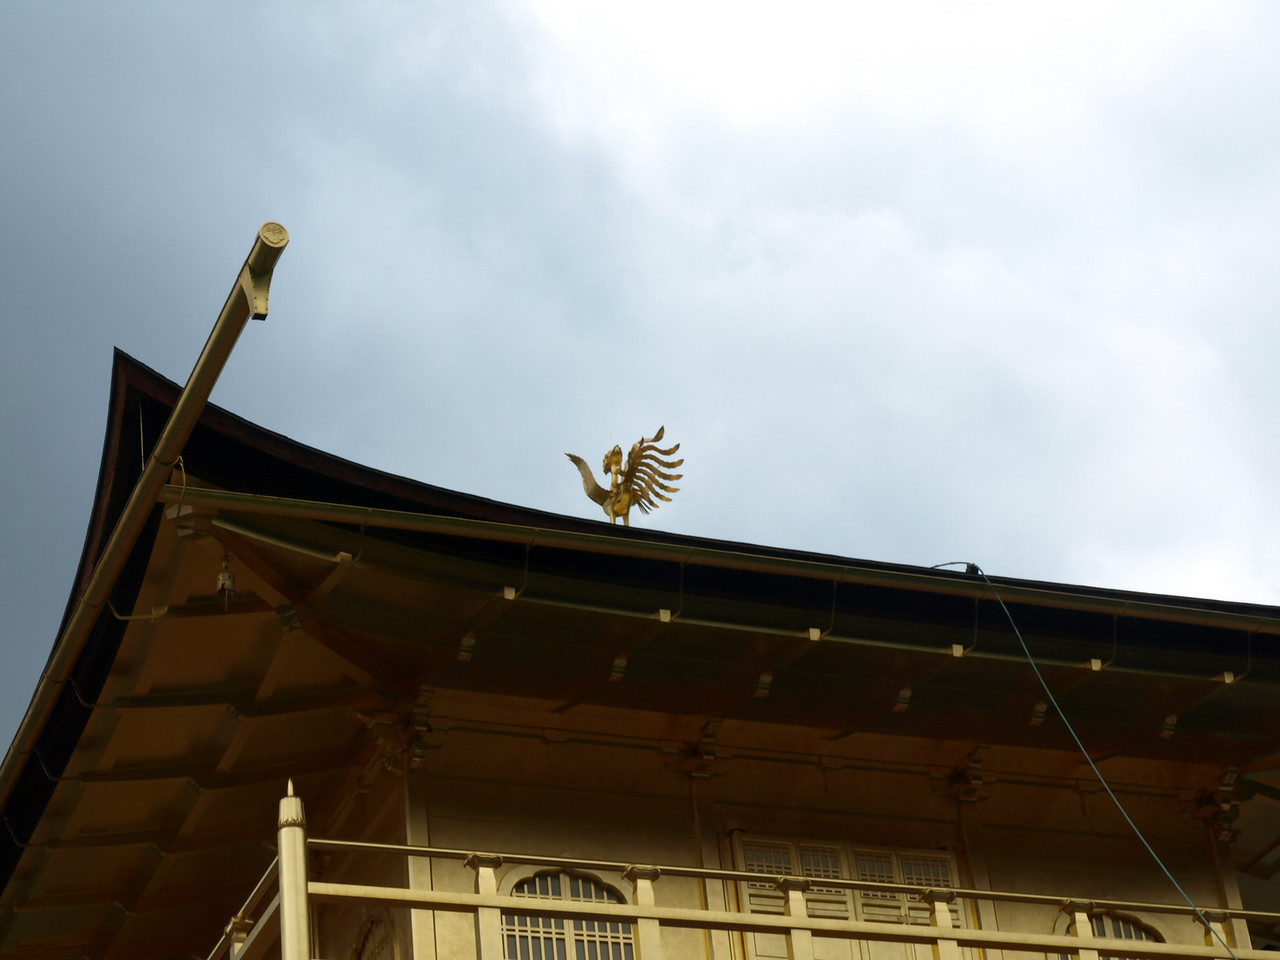 At the top of the building is a golden Chinese phoenix